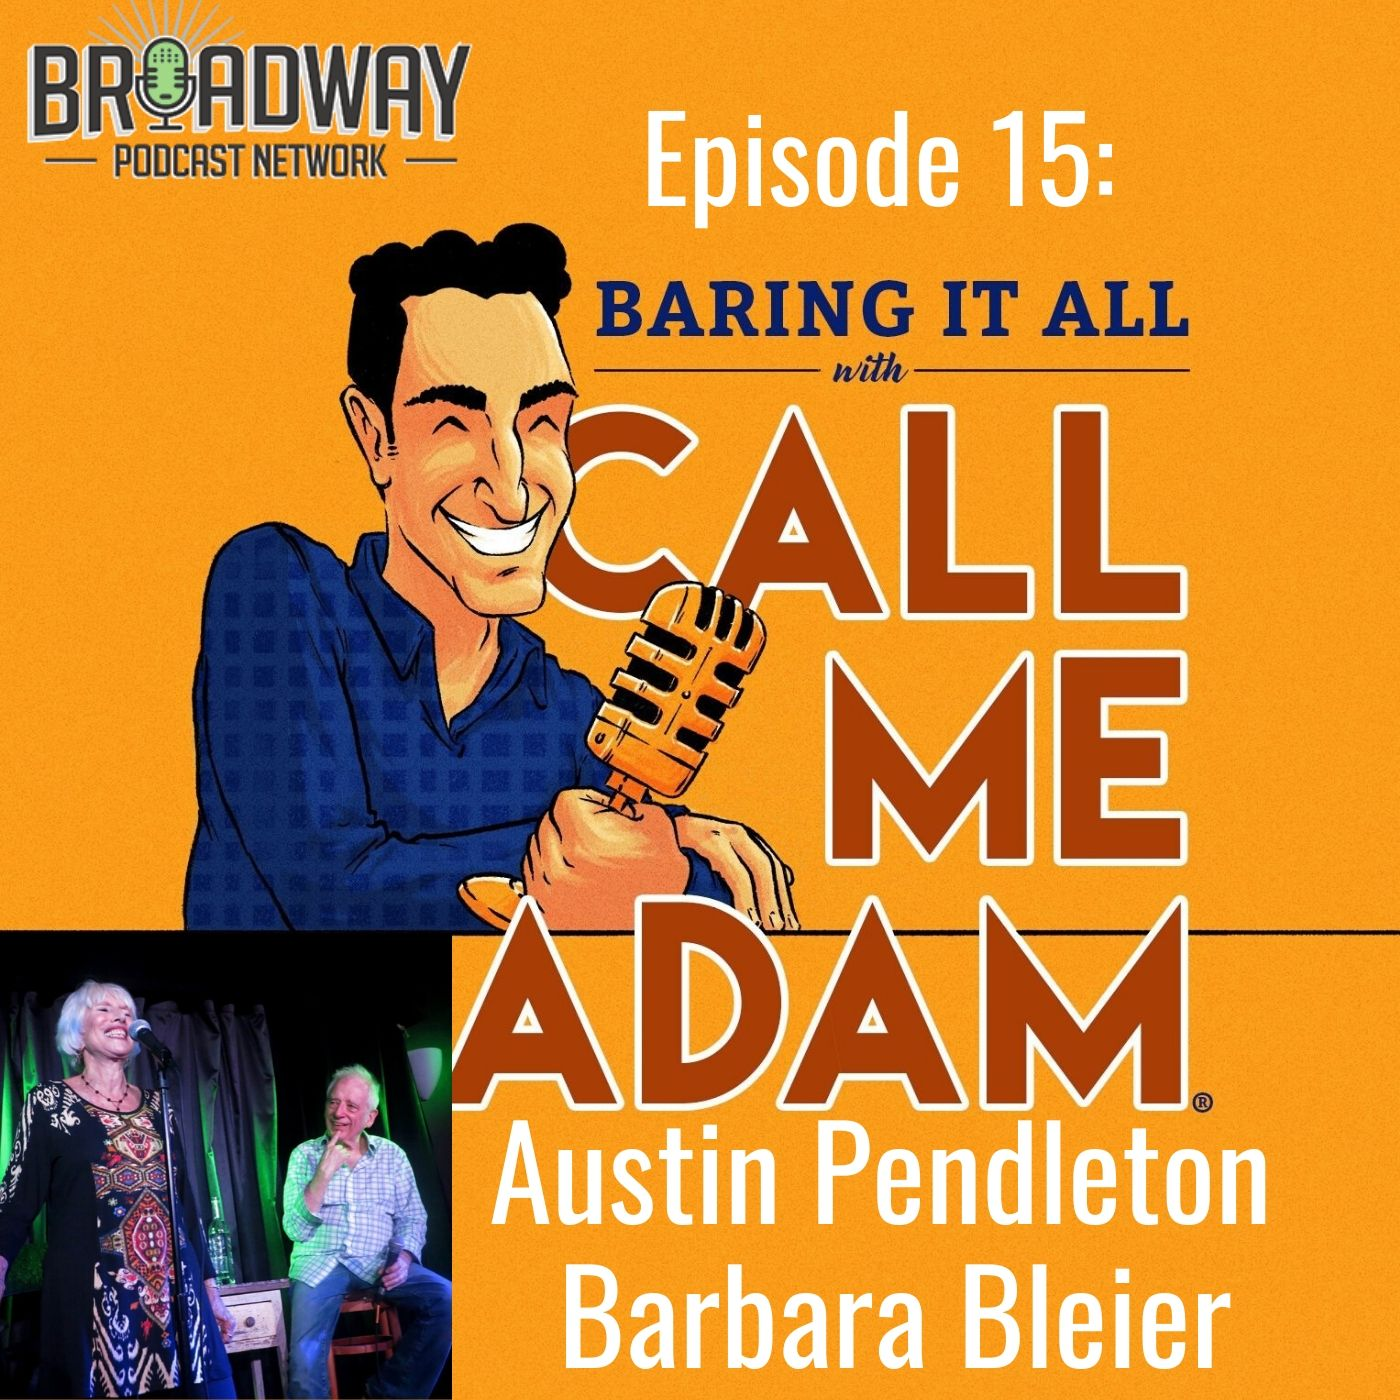 Baring It All With Call Me Adam Ep 15 Austin Pendleton and Barbara Bleier